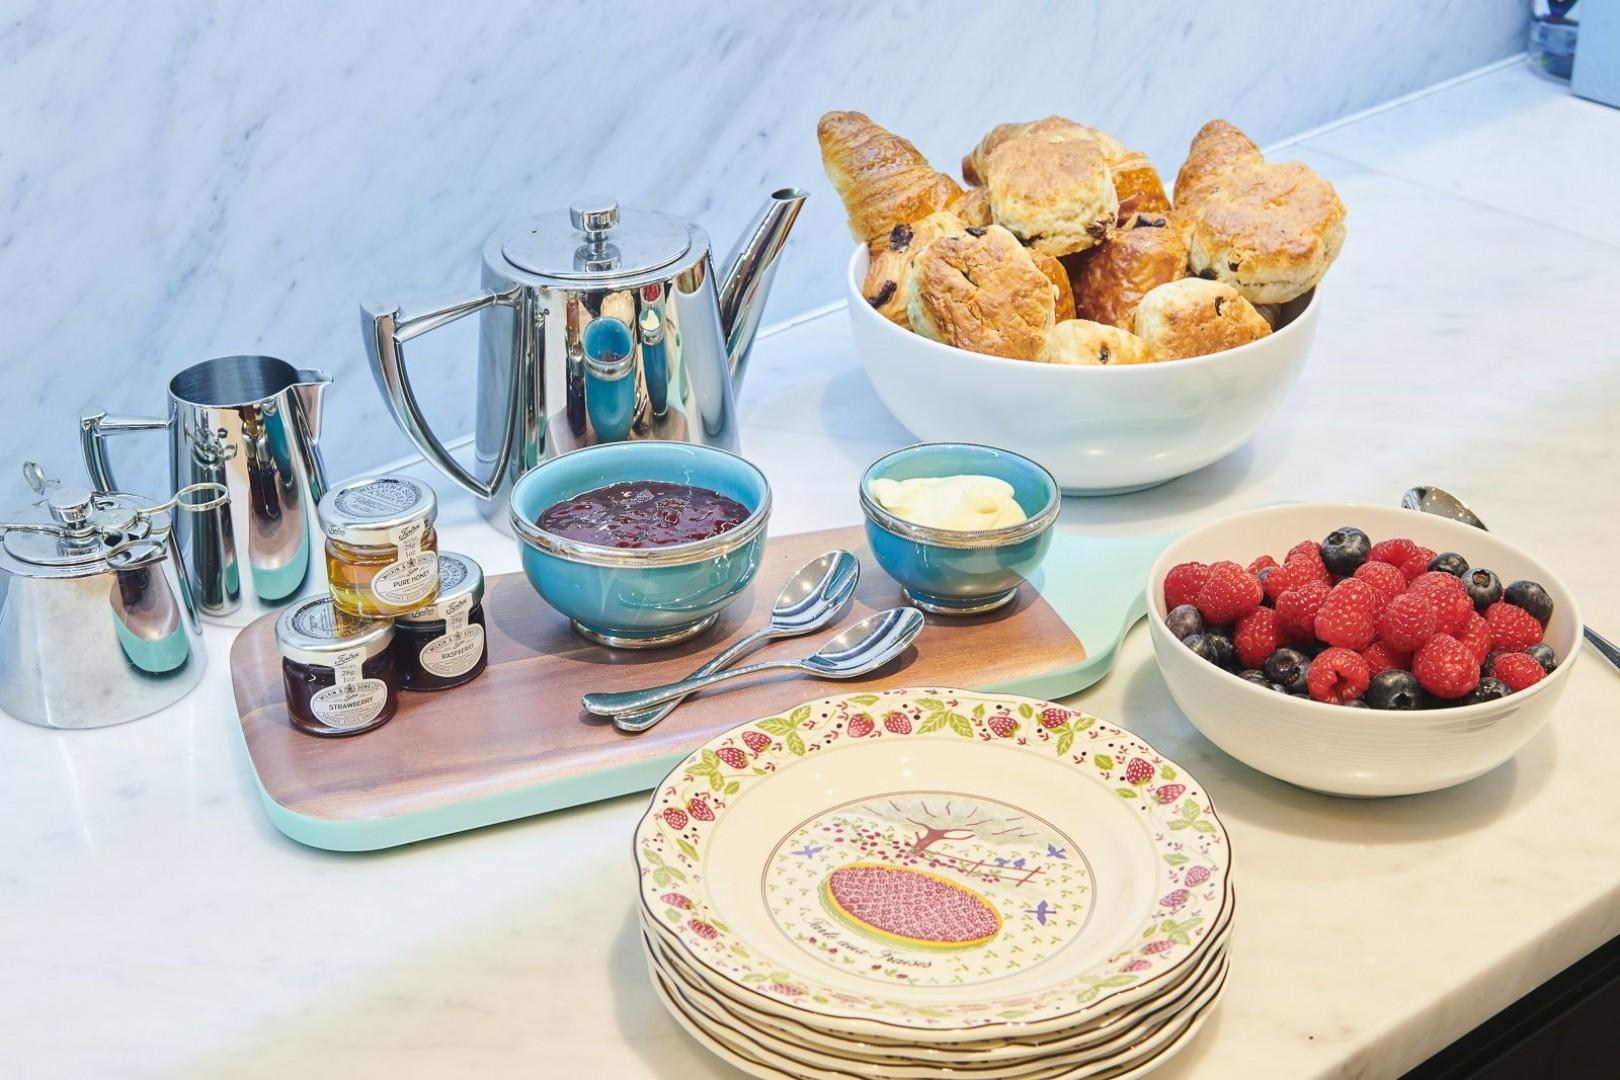 Enjoy English-style breakfast in the comfort of the house